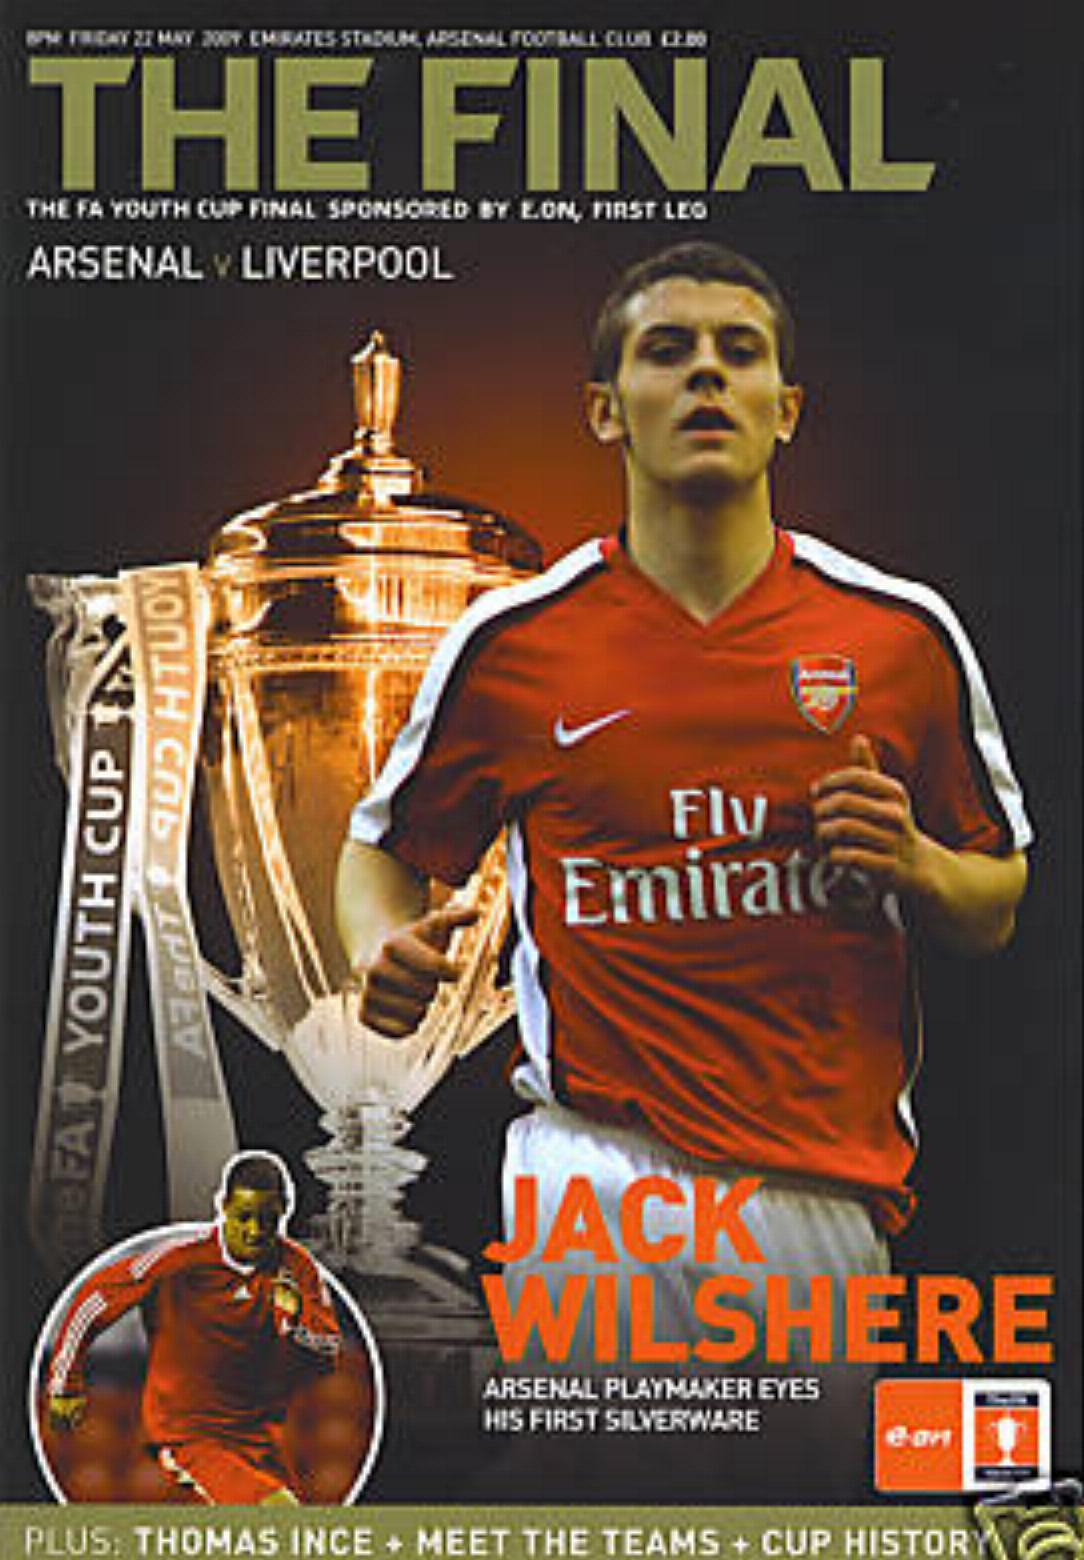 2009 FA YOUTH CUP FINAL (1st LEG) - ARSENAL v LIVERPOOL